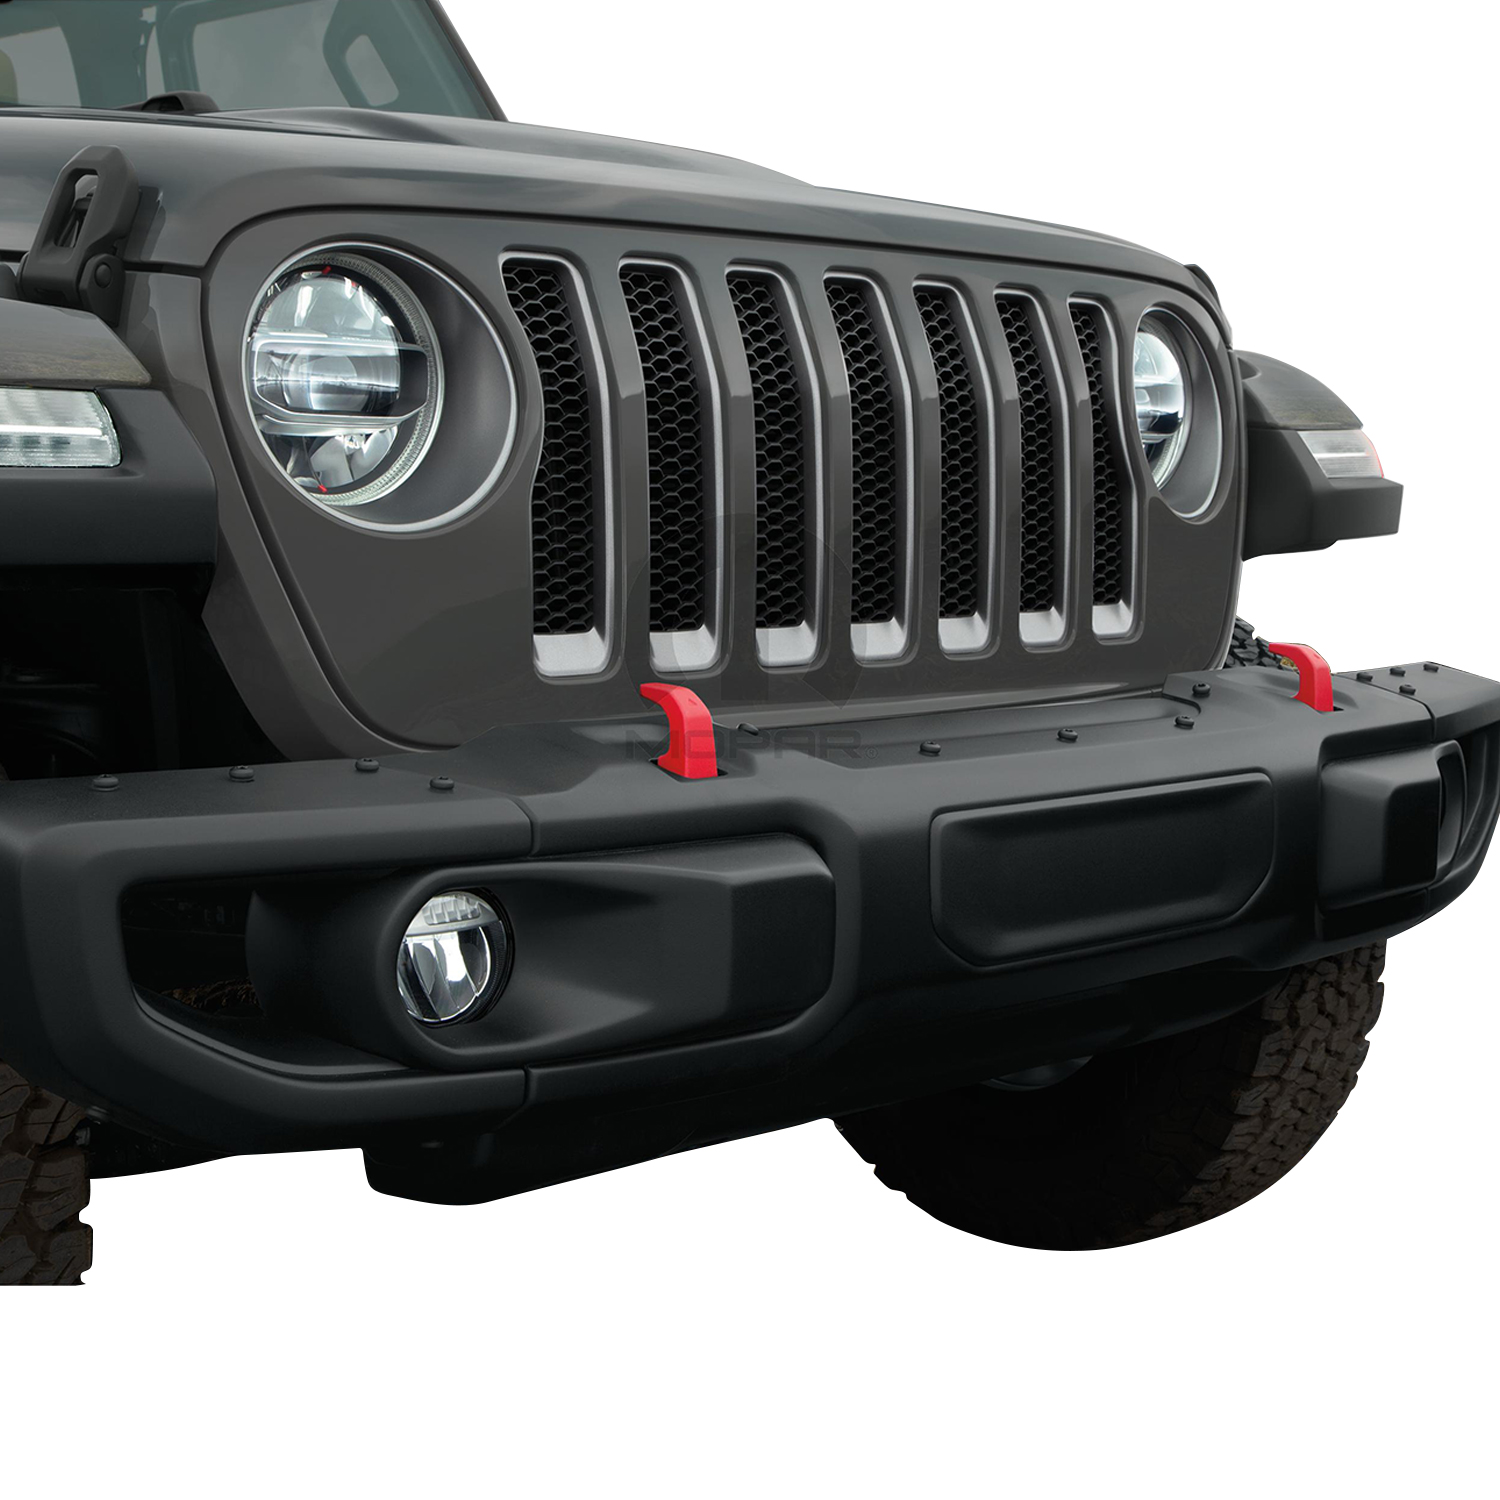 OEM 2020 Jeep Gladiator Off-Road Bumper (Part #82215120AB)